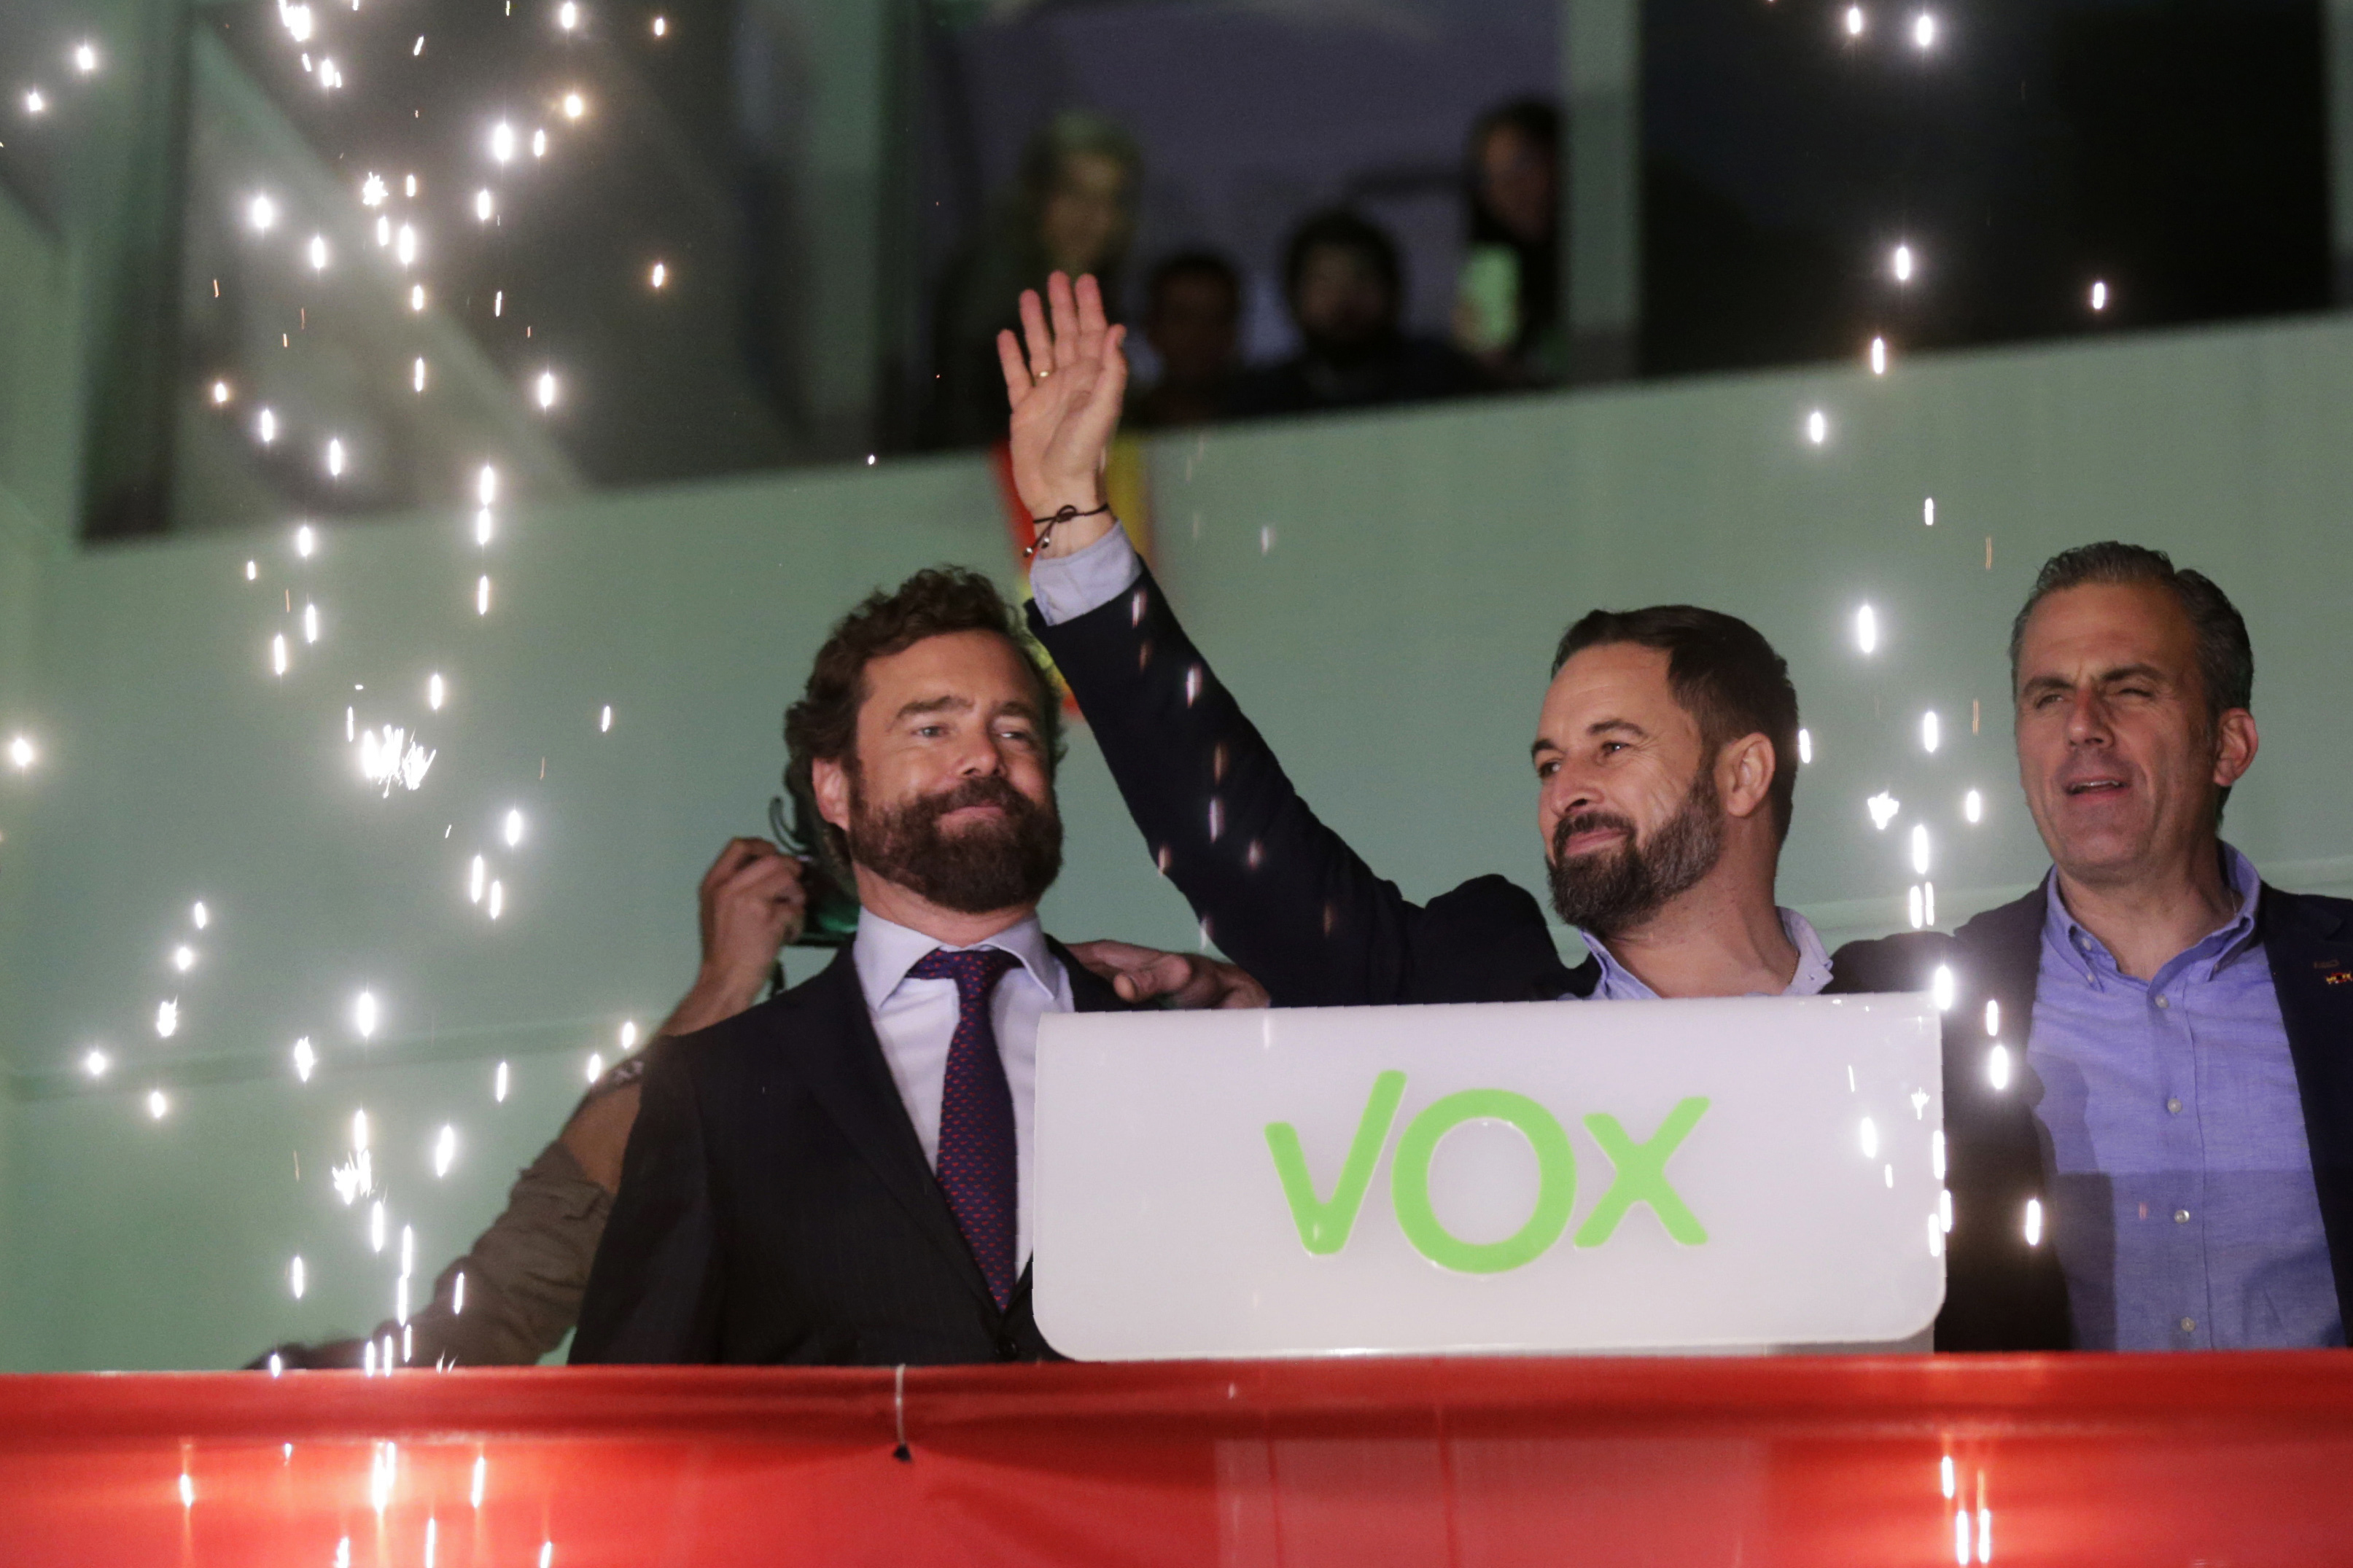 Santiago Abascal, leader of far-right Vox Party, waves to supporters as fireworks go off outside the party headquarters after the announcement of the general election first results, in Madrid on Nov. 10, 2019.